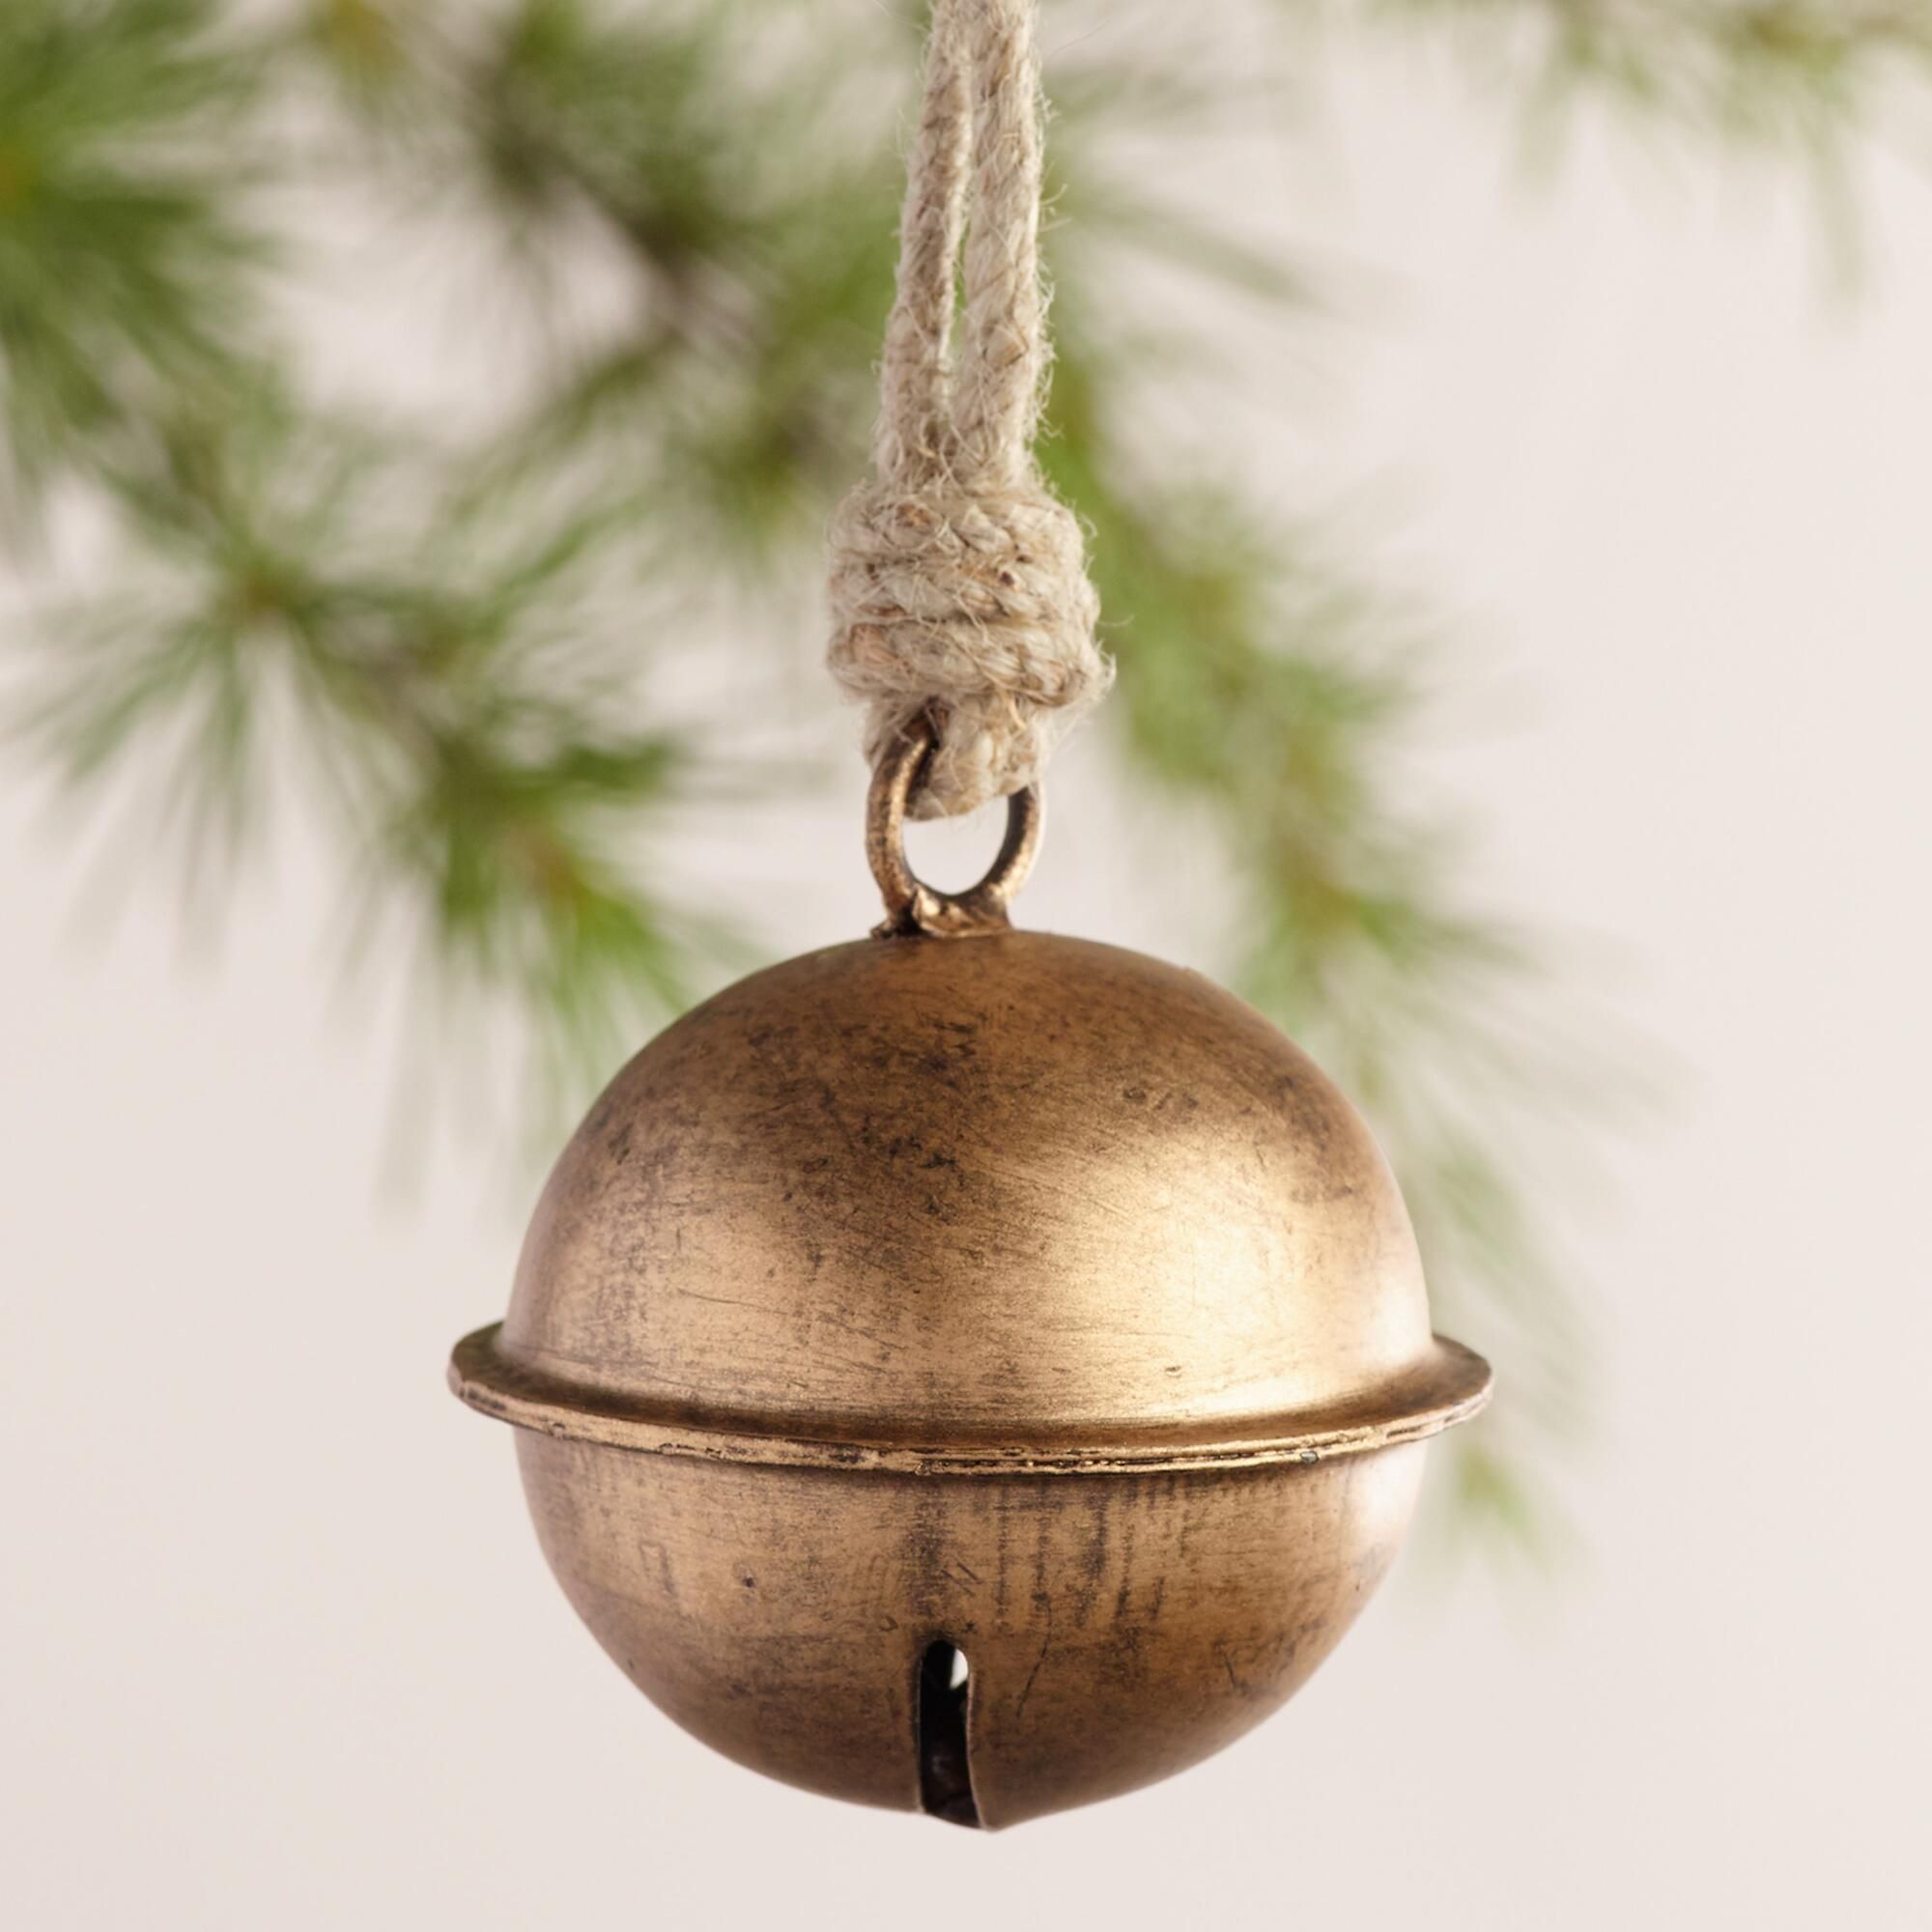 Jingle Bell Tree Decorations Oh What Fun It Is To Decorate Your Tree With Our Classic Jingle